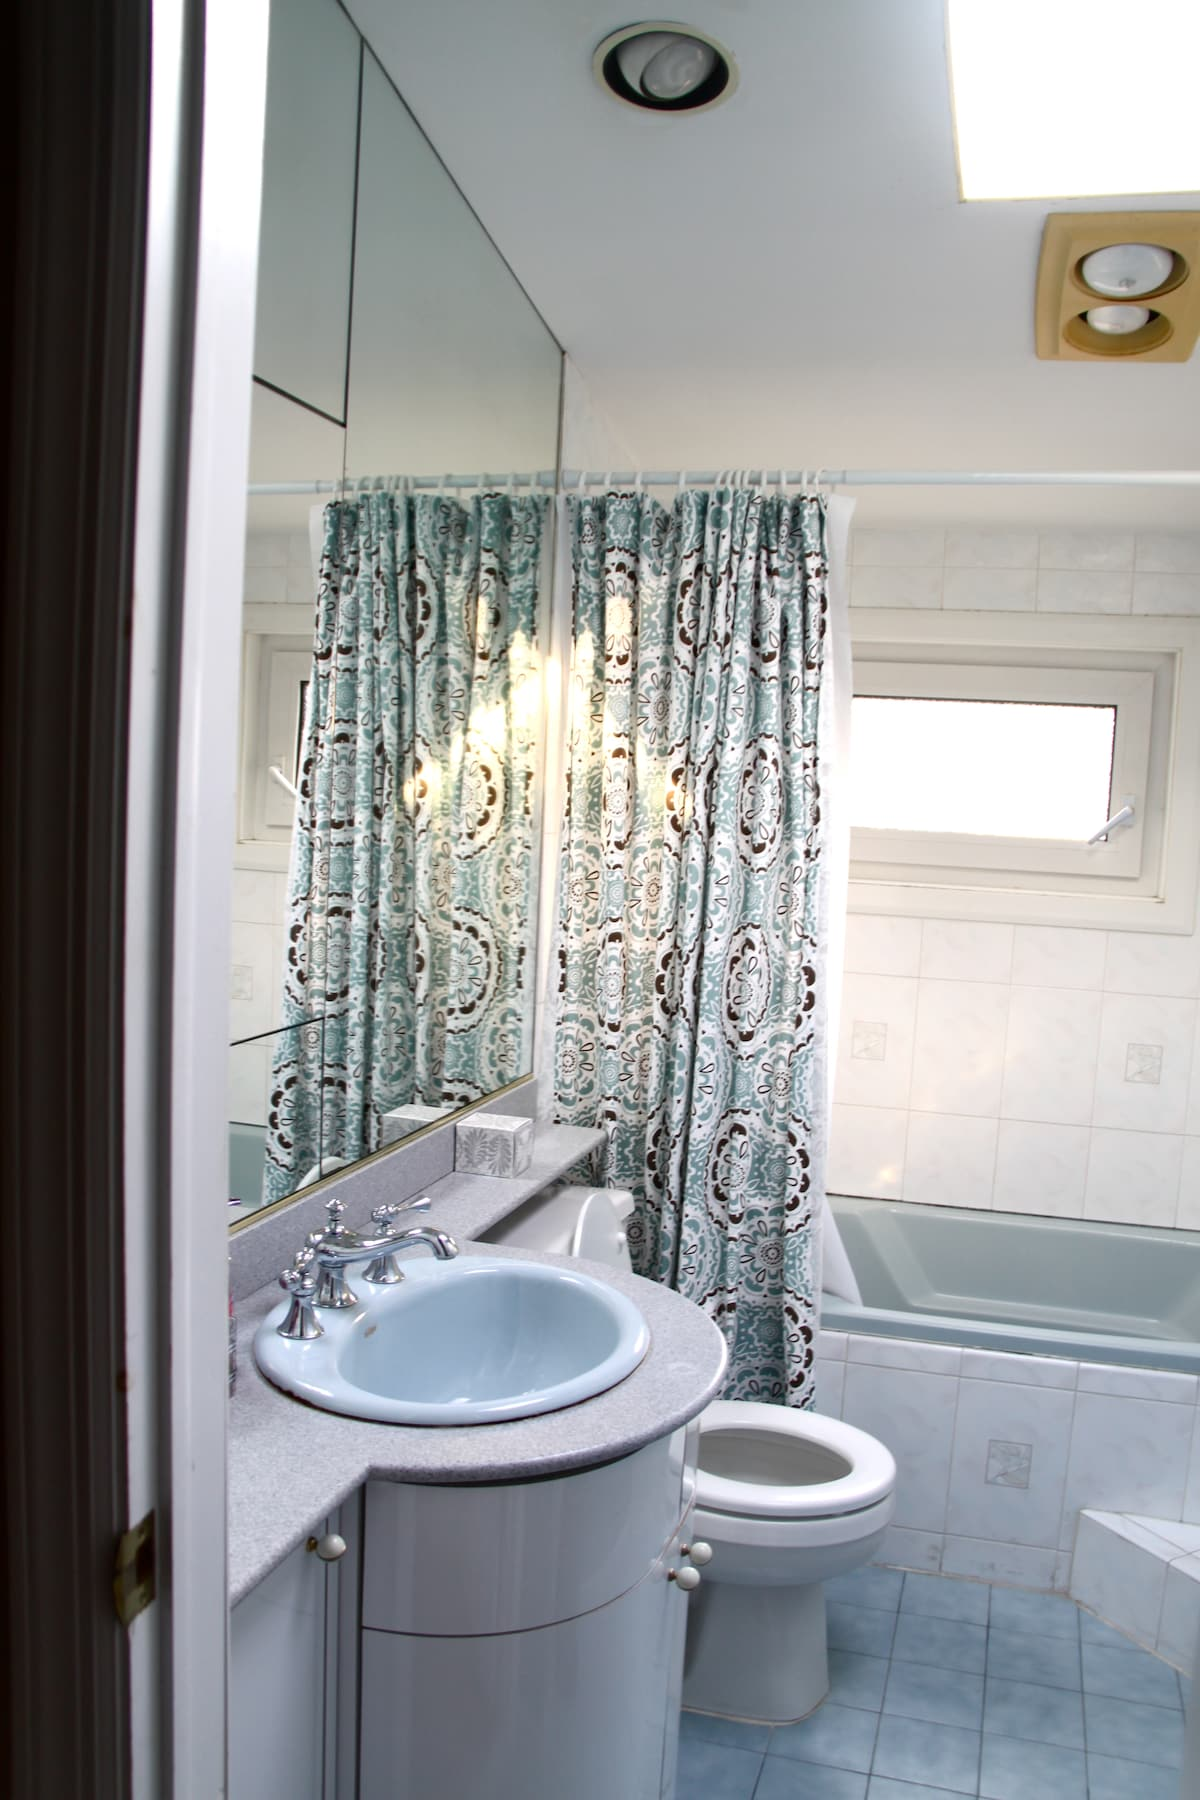 A well-lit bathroom with sky-lights and heat-lamps is right down the hall from your room.